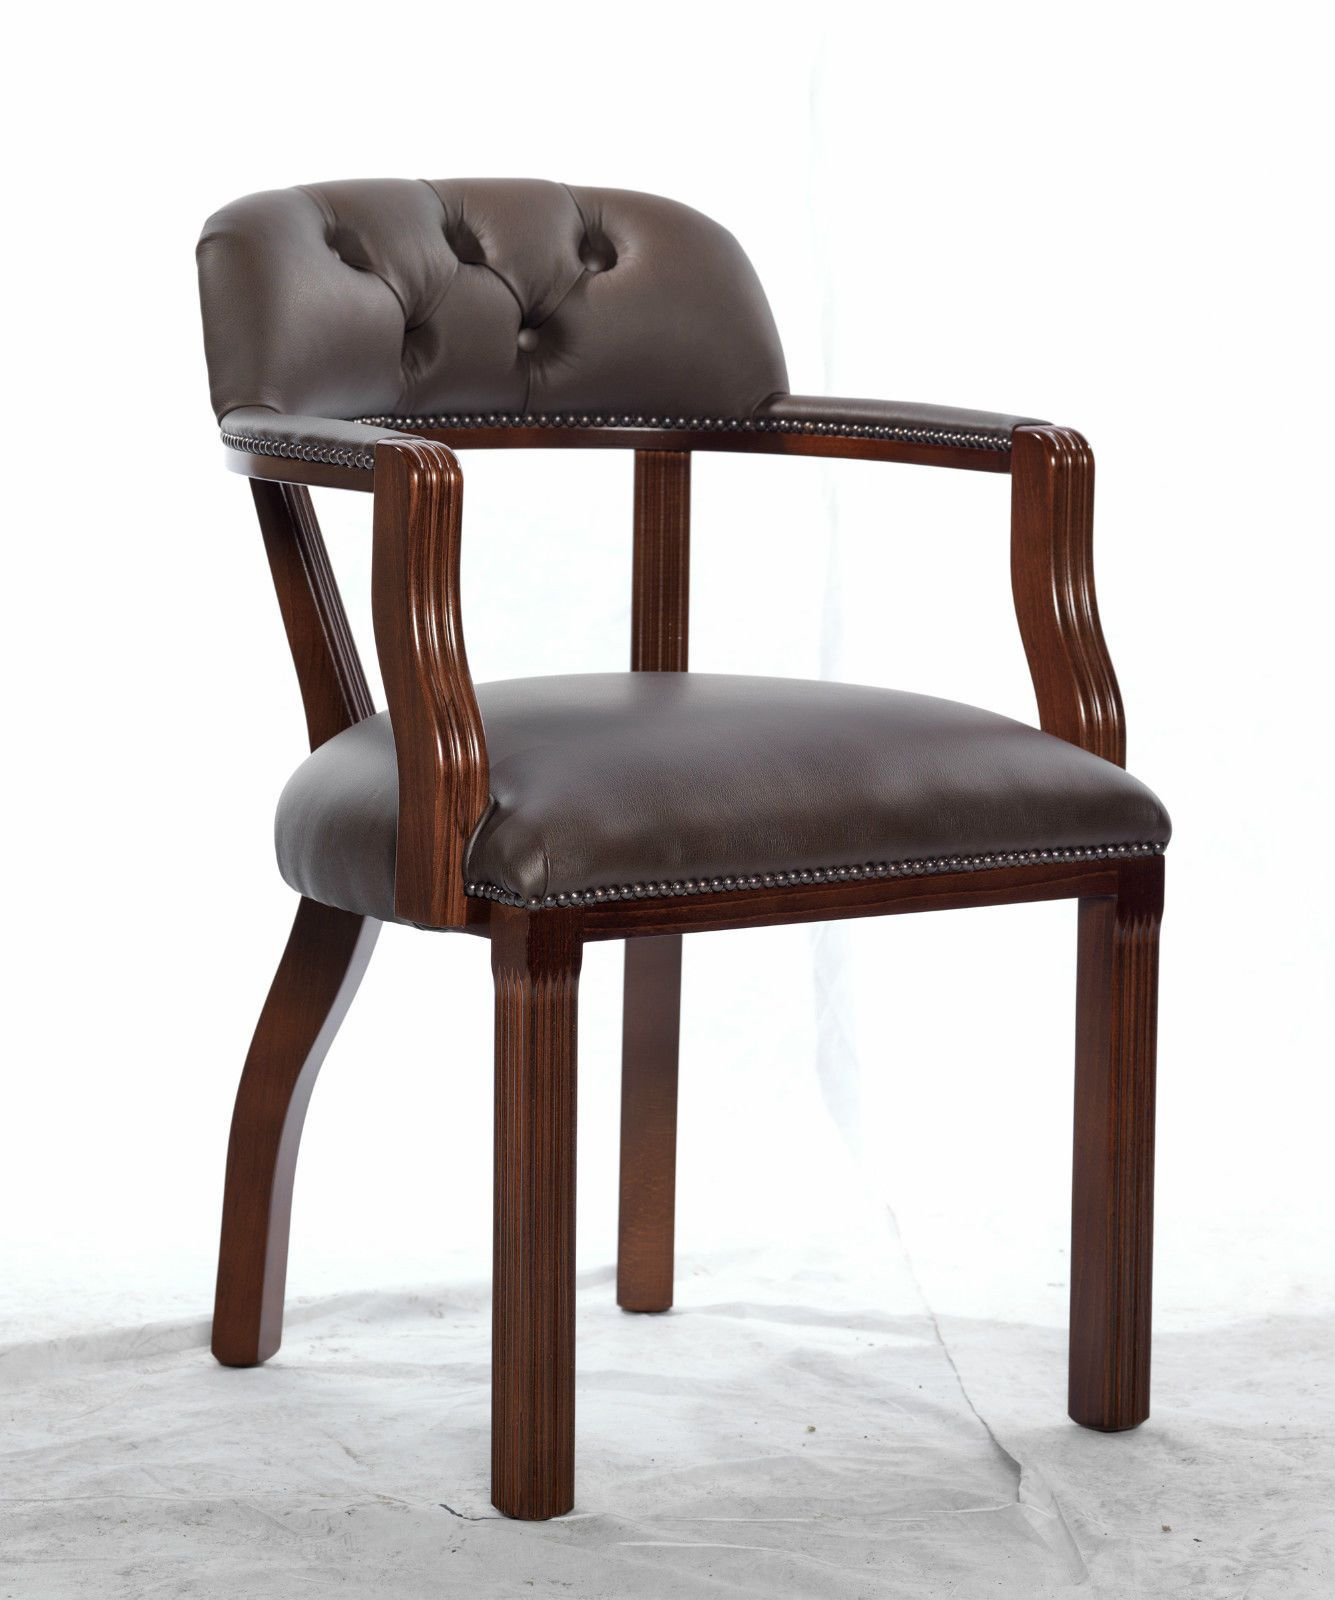 Remarkable Details About Court Chair Armchair Dining Chair Chesterfield Cjindustries Chair Design For Home Cjindustriesco